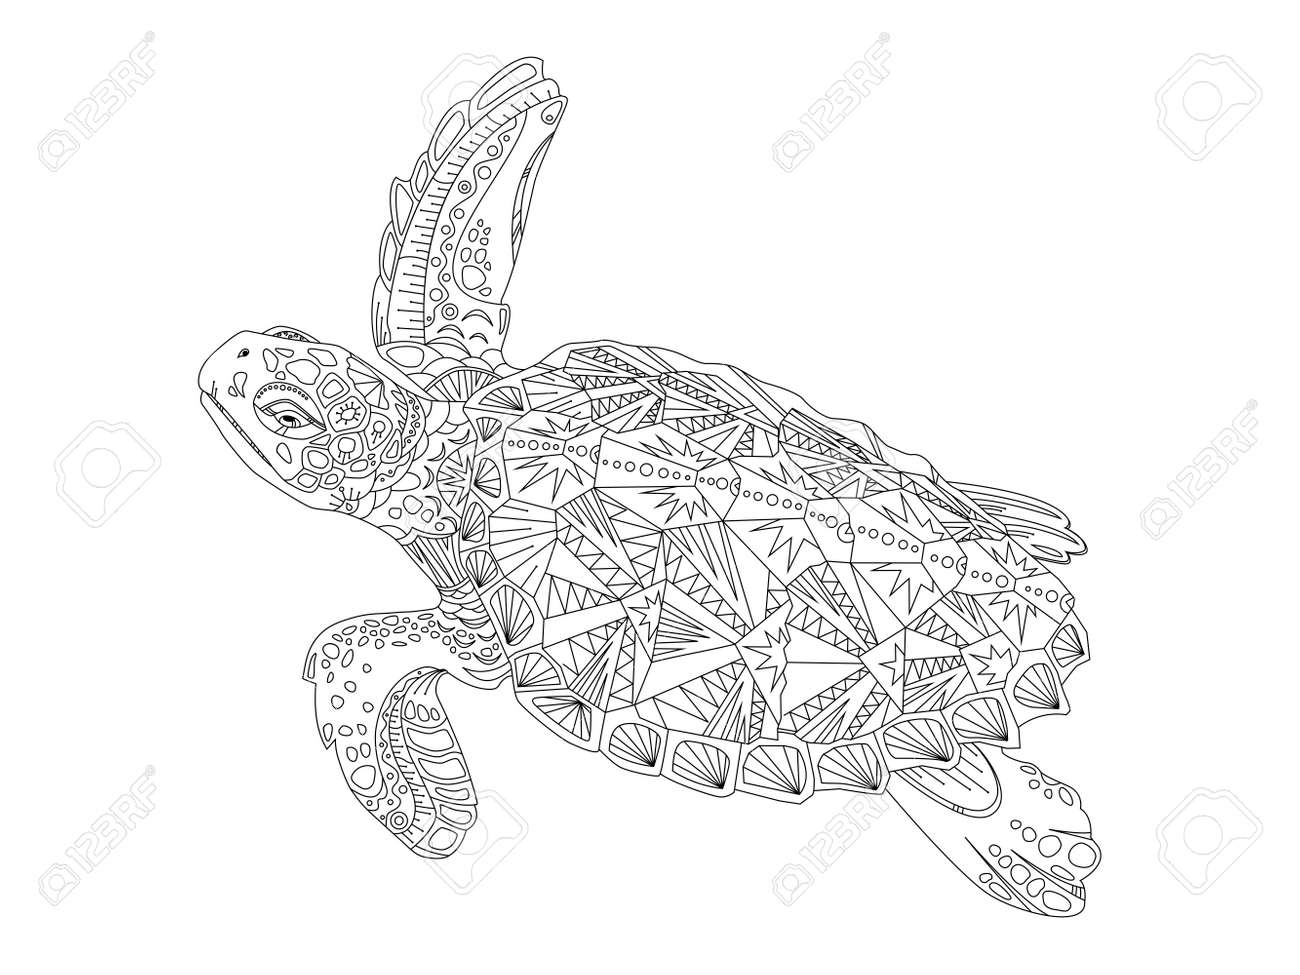 Turtle coloring book vector illustration. Anti-stress coloring..